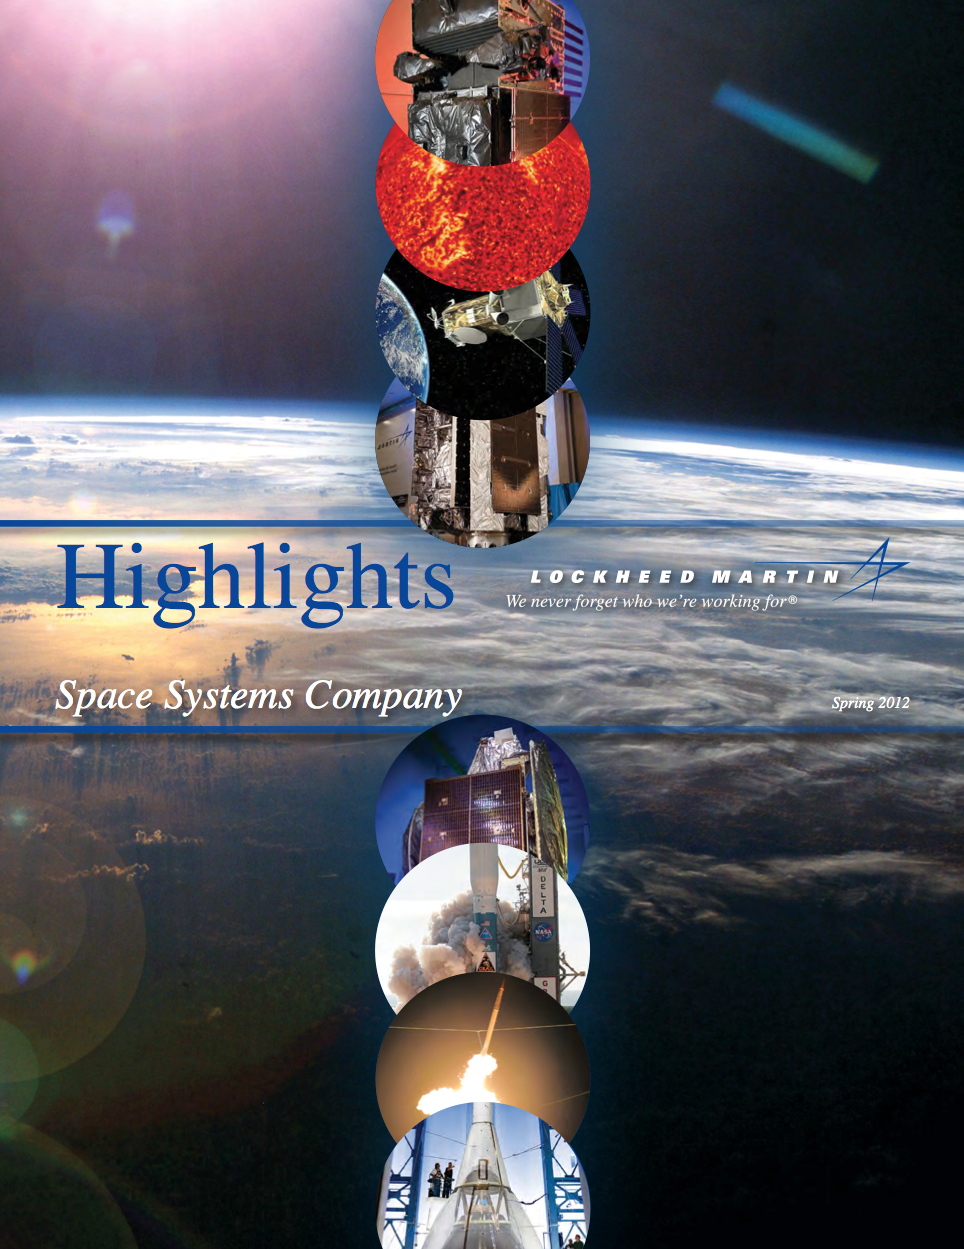 2012 edition of the annual publications called Highlights.